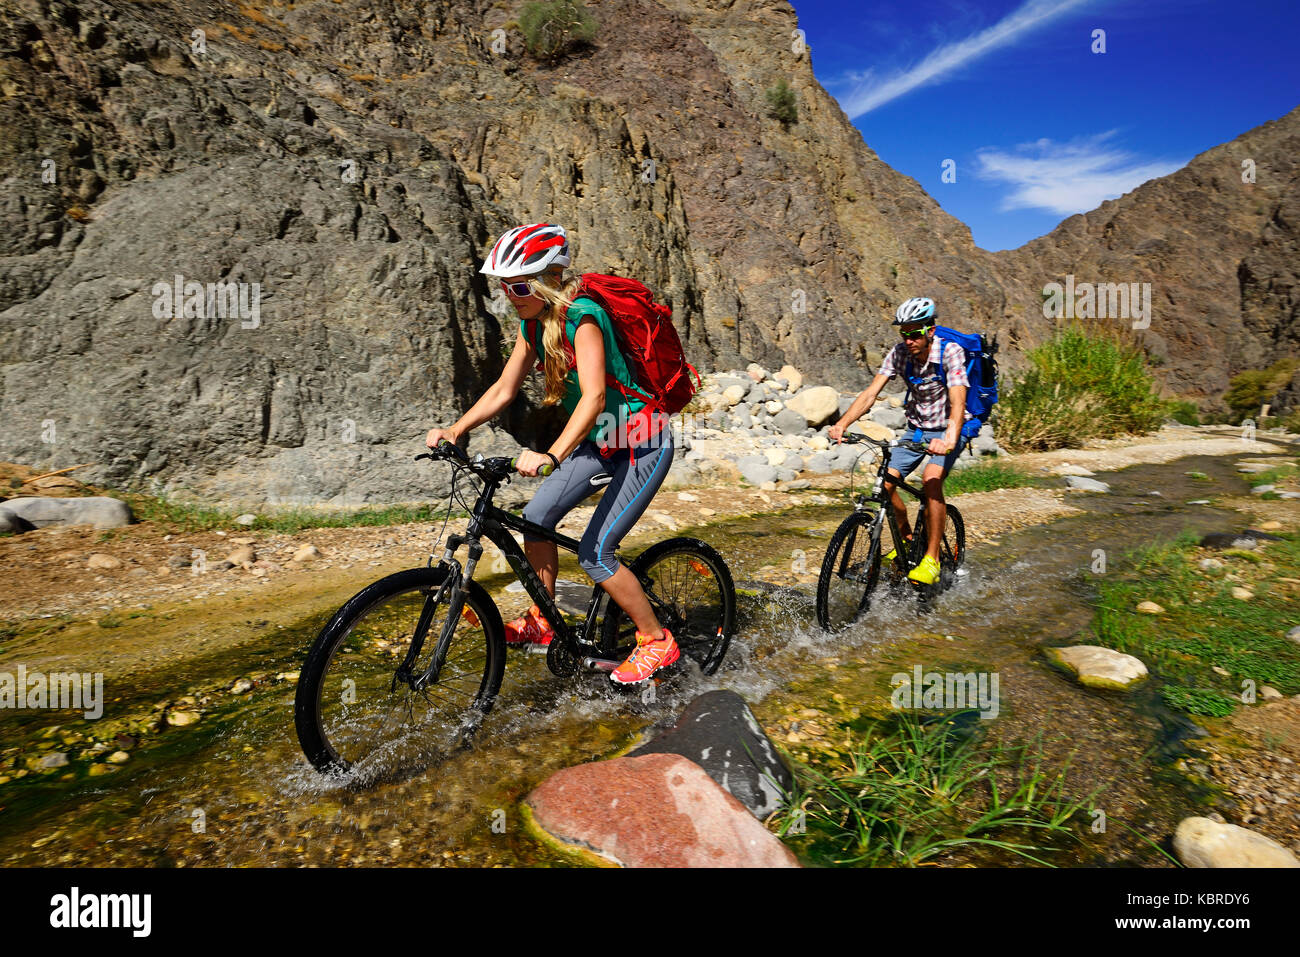 Tourists with mountain bikes in the area of Feynan Ecolodge, Jordan - Stock Image